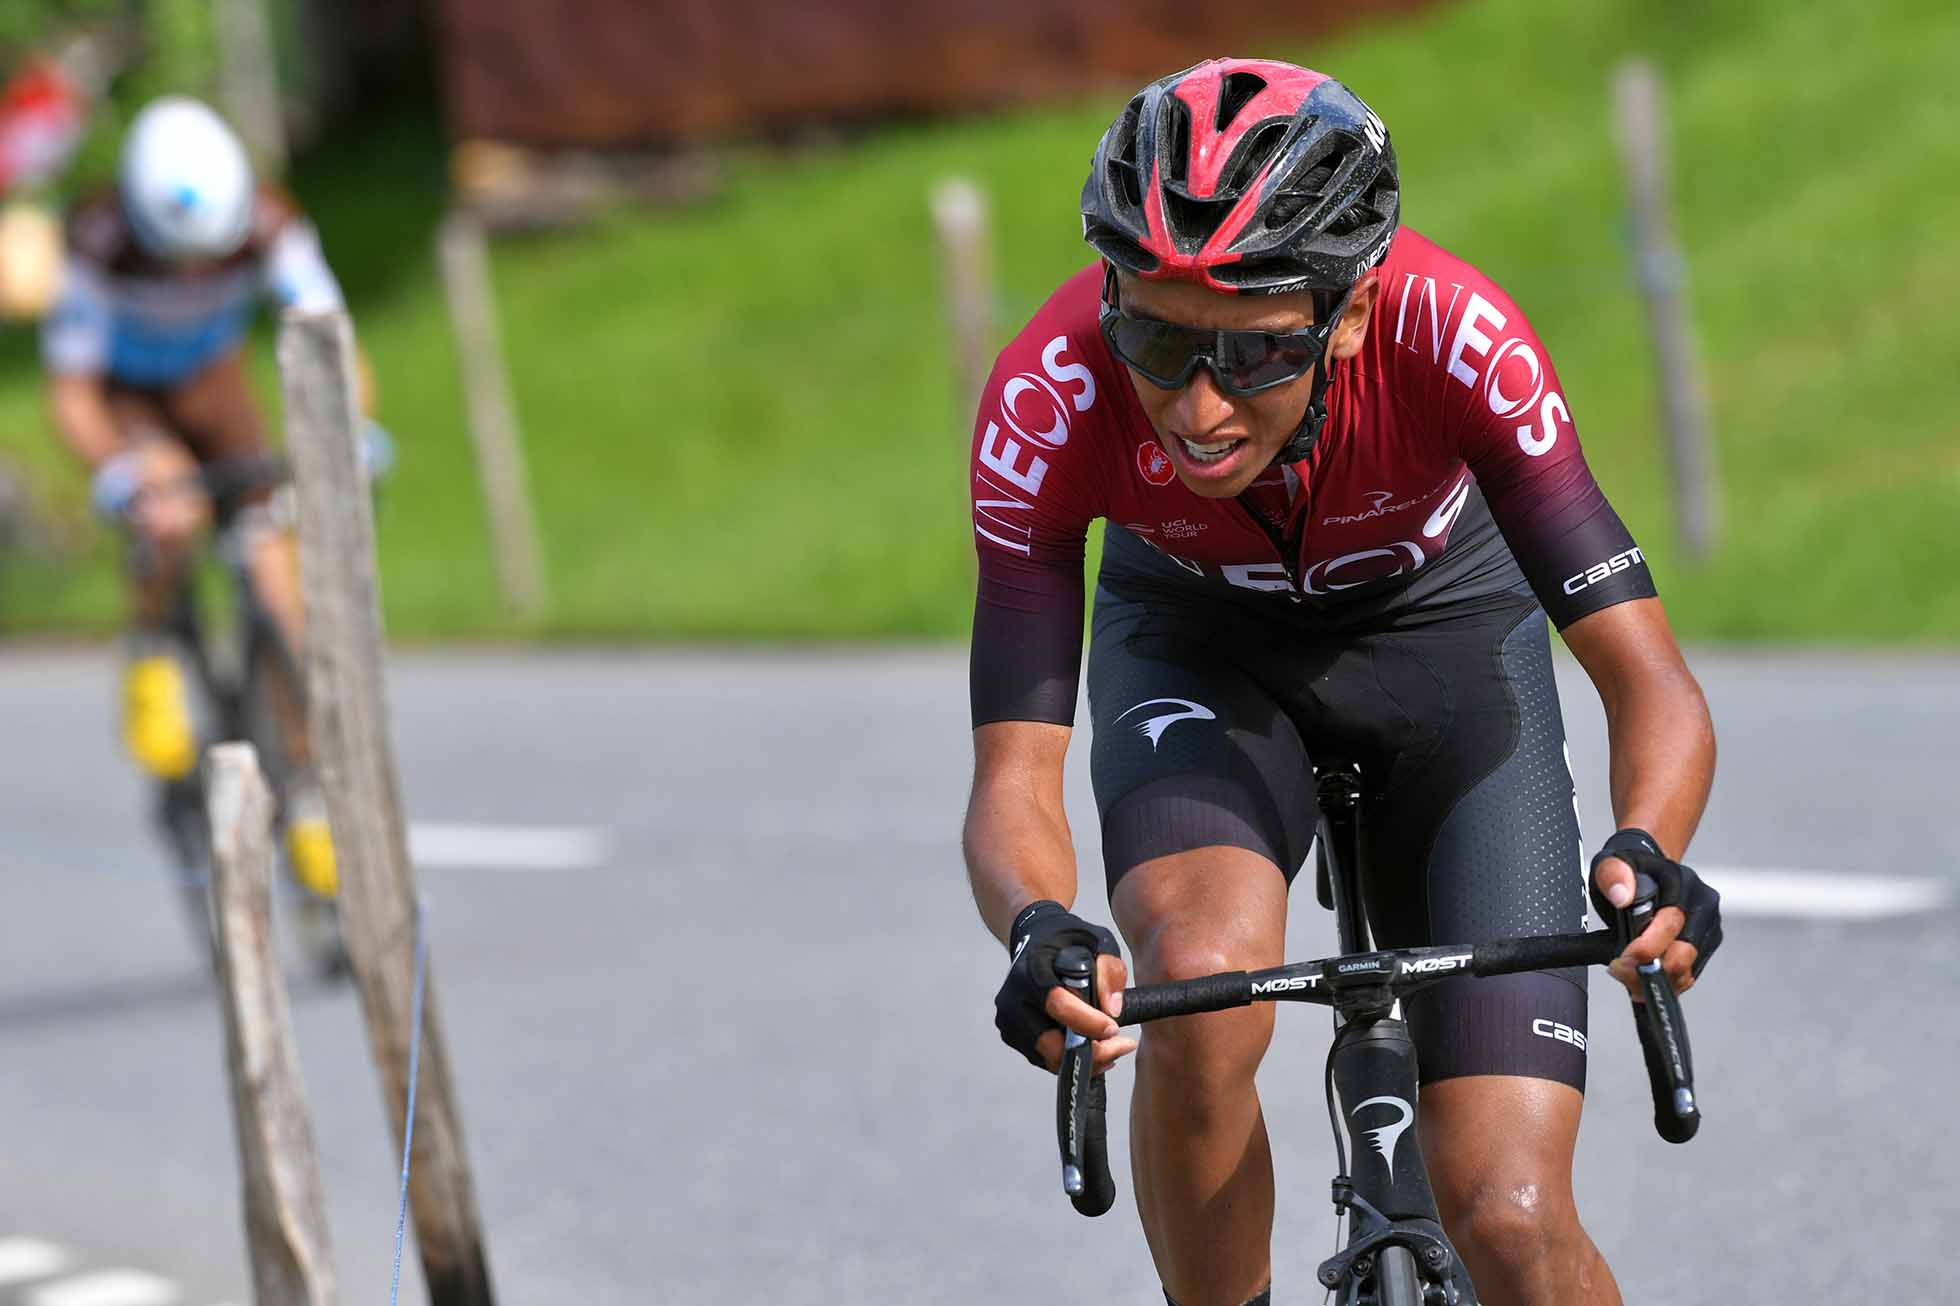 FLUMSERBERG, SWITZERLAND - JUNE 20: Egan Arley Bernal of Colombia and Team INEOS / during the 83rd Tour of Switzerland - Stage 6 a 120,2km stage from Einsiedeln to Flumserberg 1220m / TDS / @tds / #tourdesuisse / on June 20, 2019 in Flumserberg, Switzerland. (Photo by Tim de Waele/Getty Images)